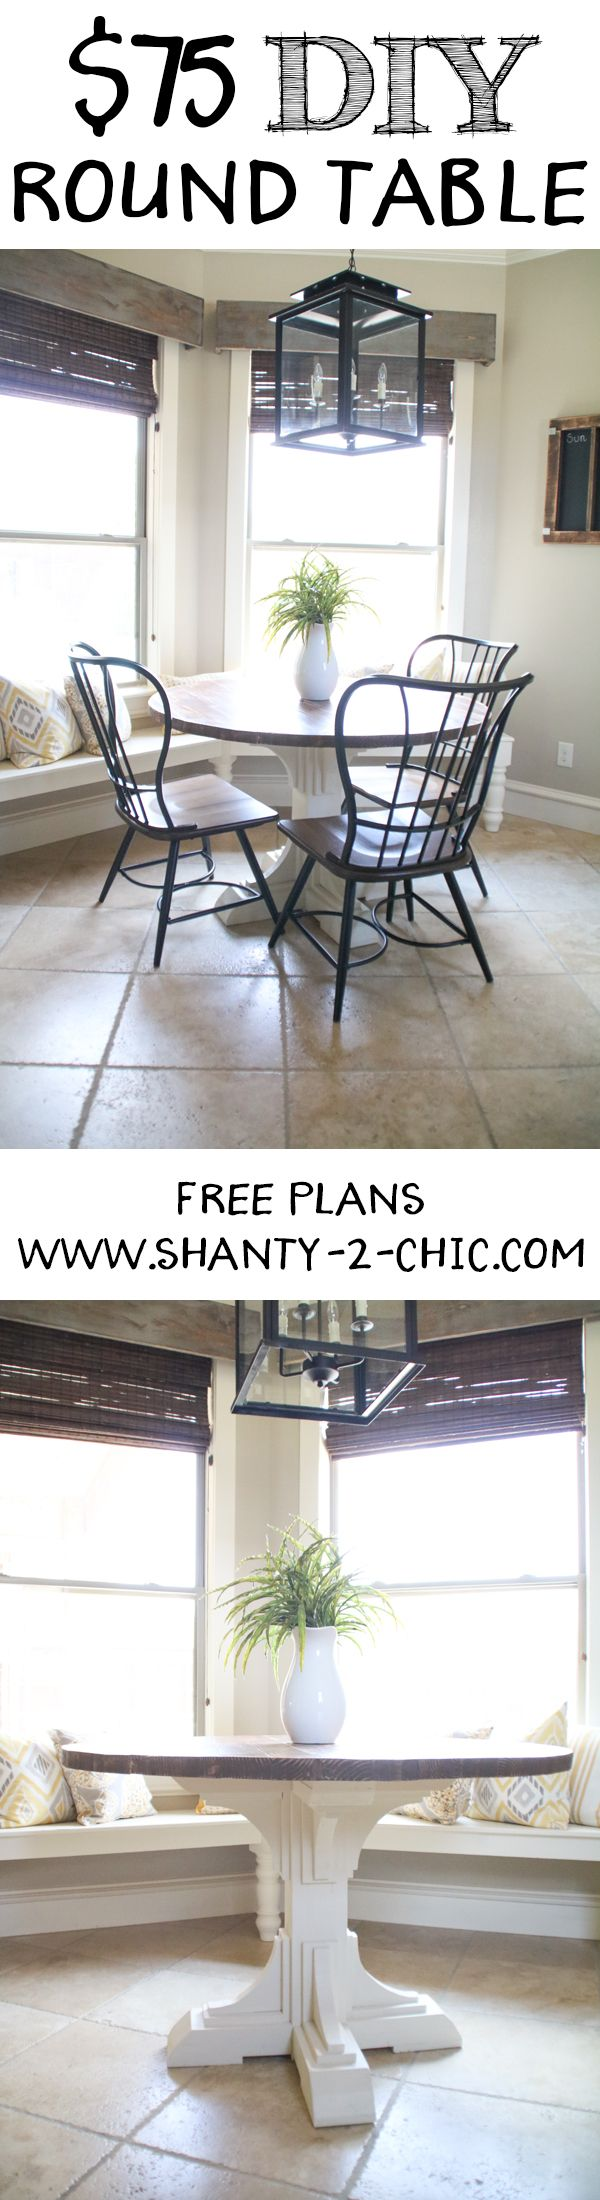 Build a round table for only $75 in lumber with free plans and how-to tutorial from www.shanty-2-chic.com